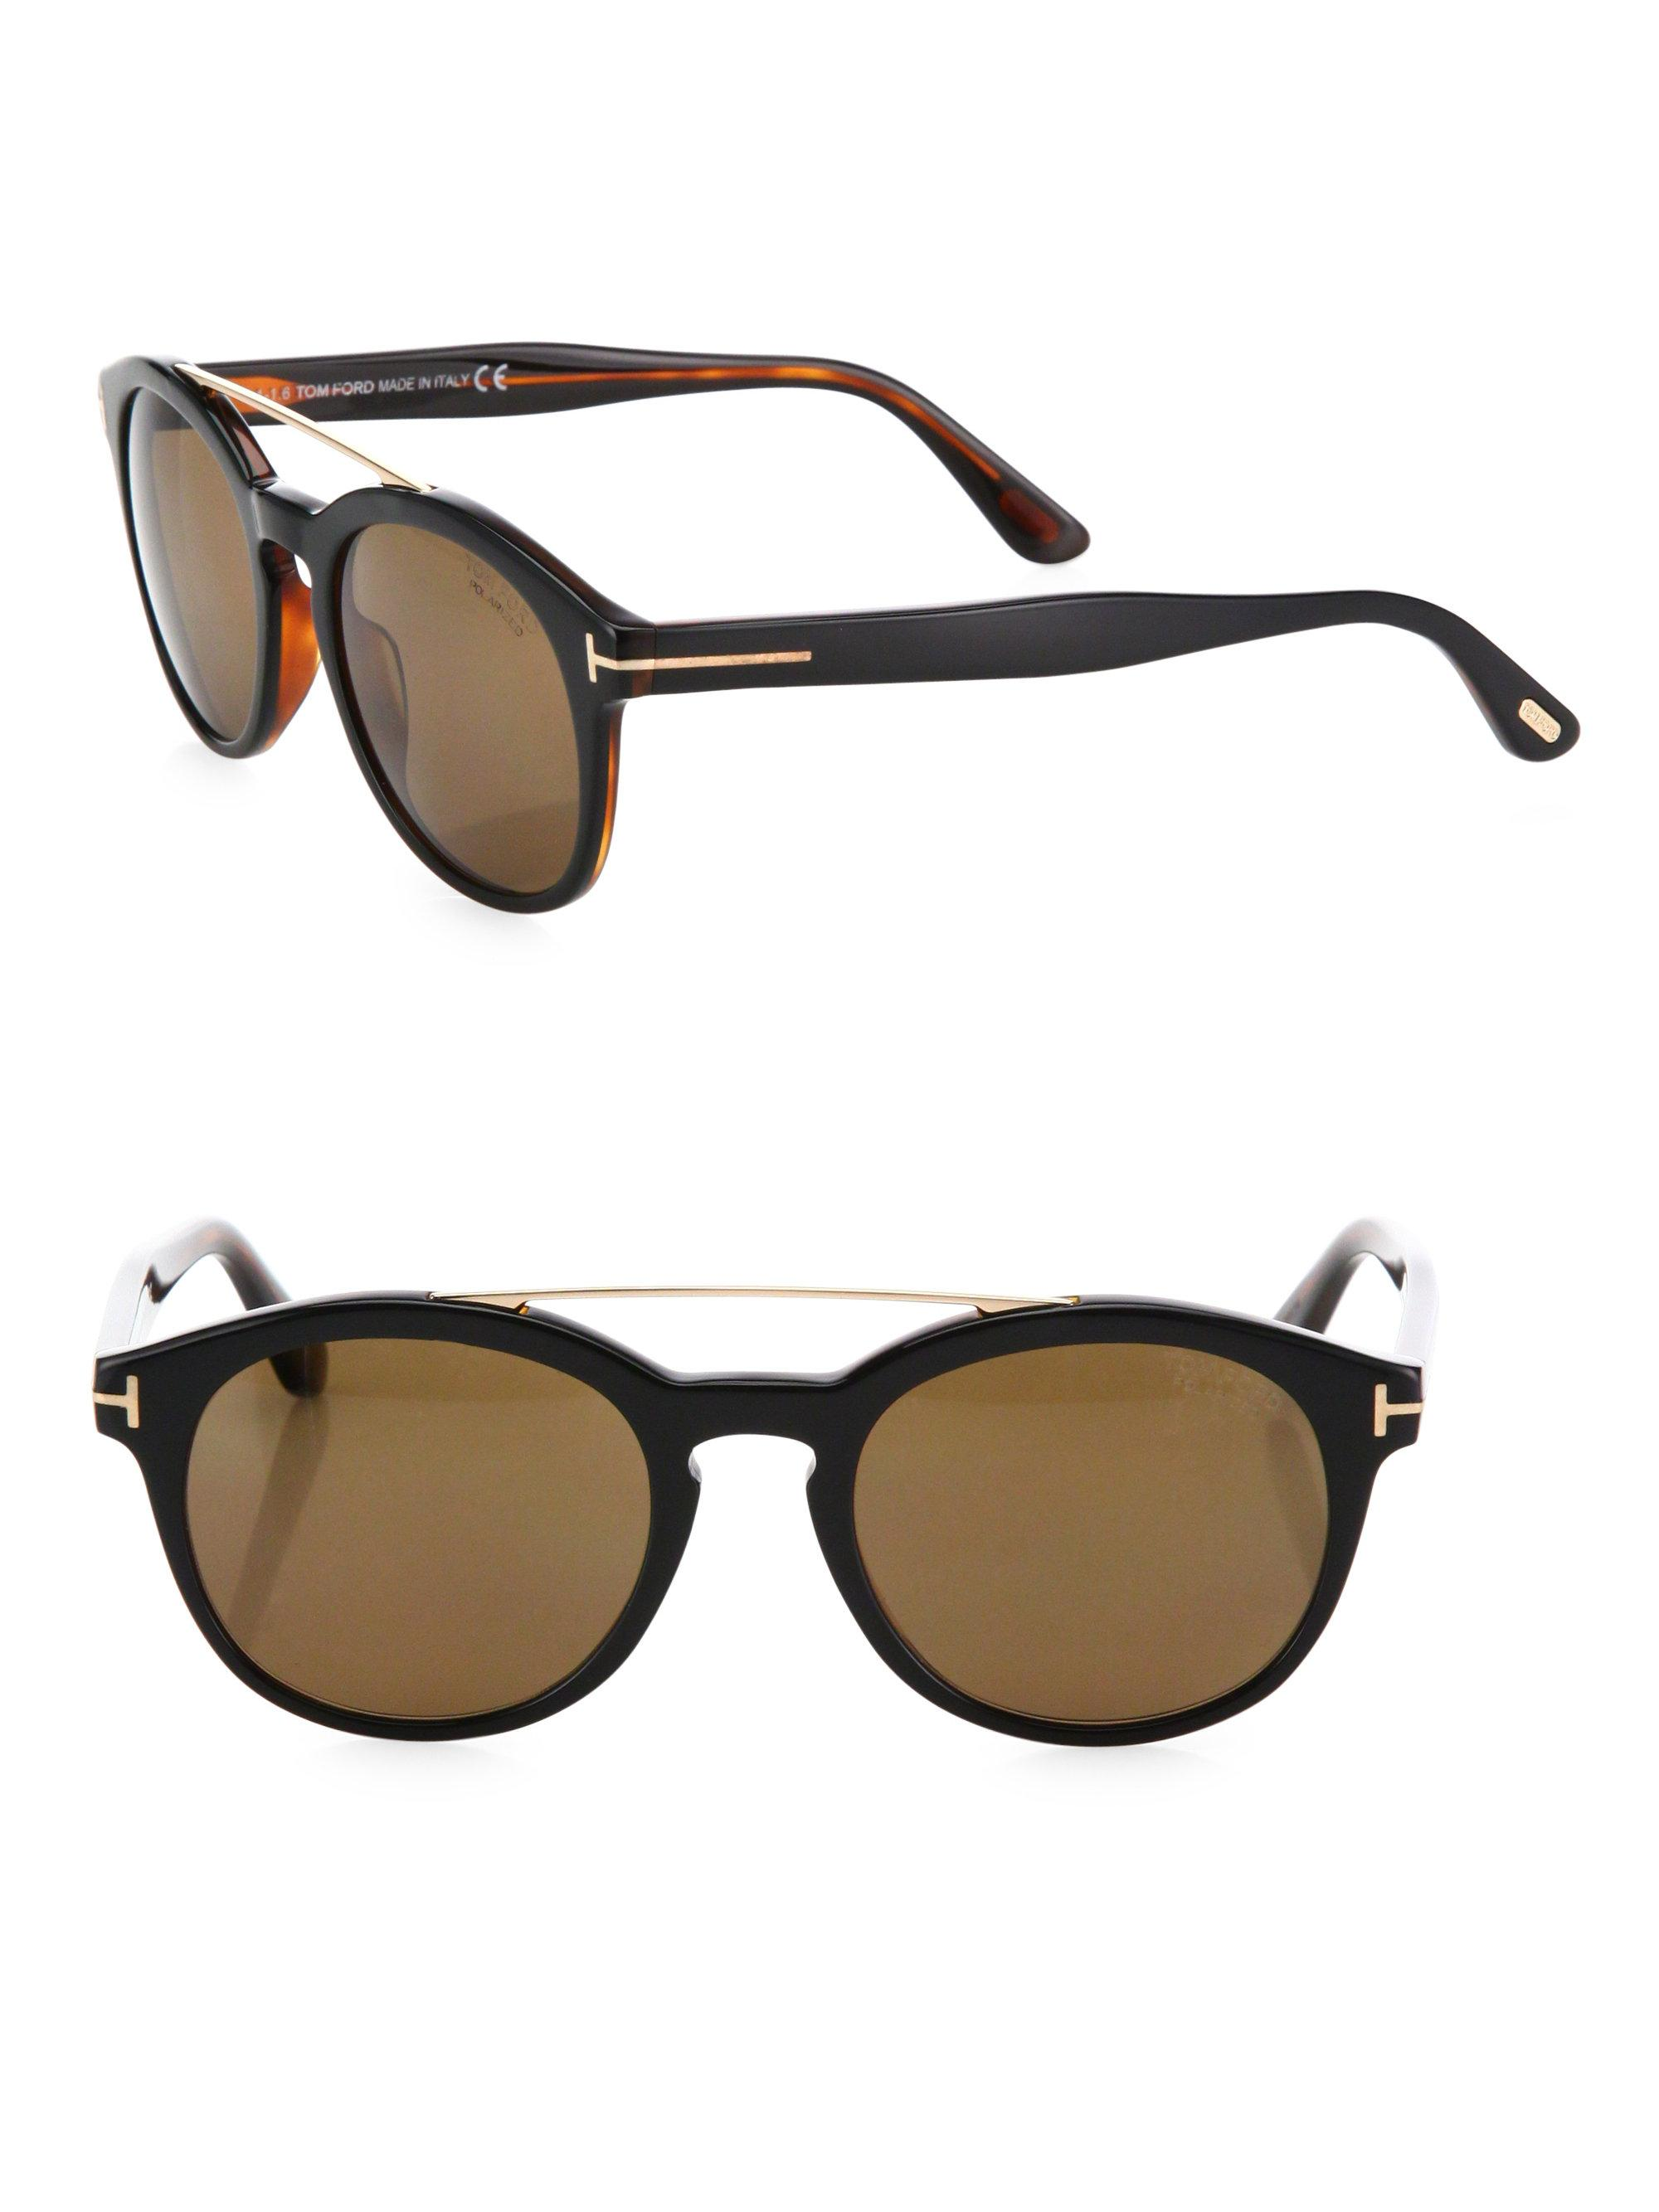 dcc460e94856f Lyst - Tom Ford 53mm Polarized Round Sunglasses in Black